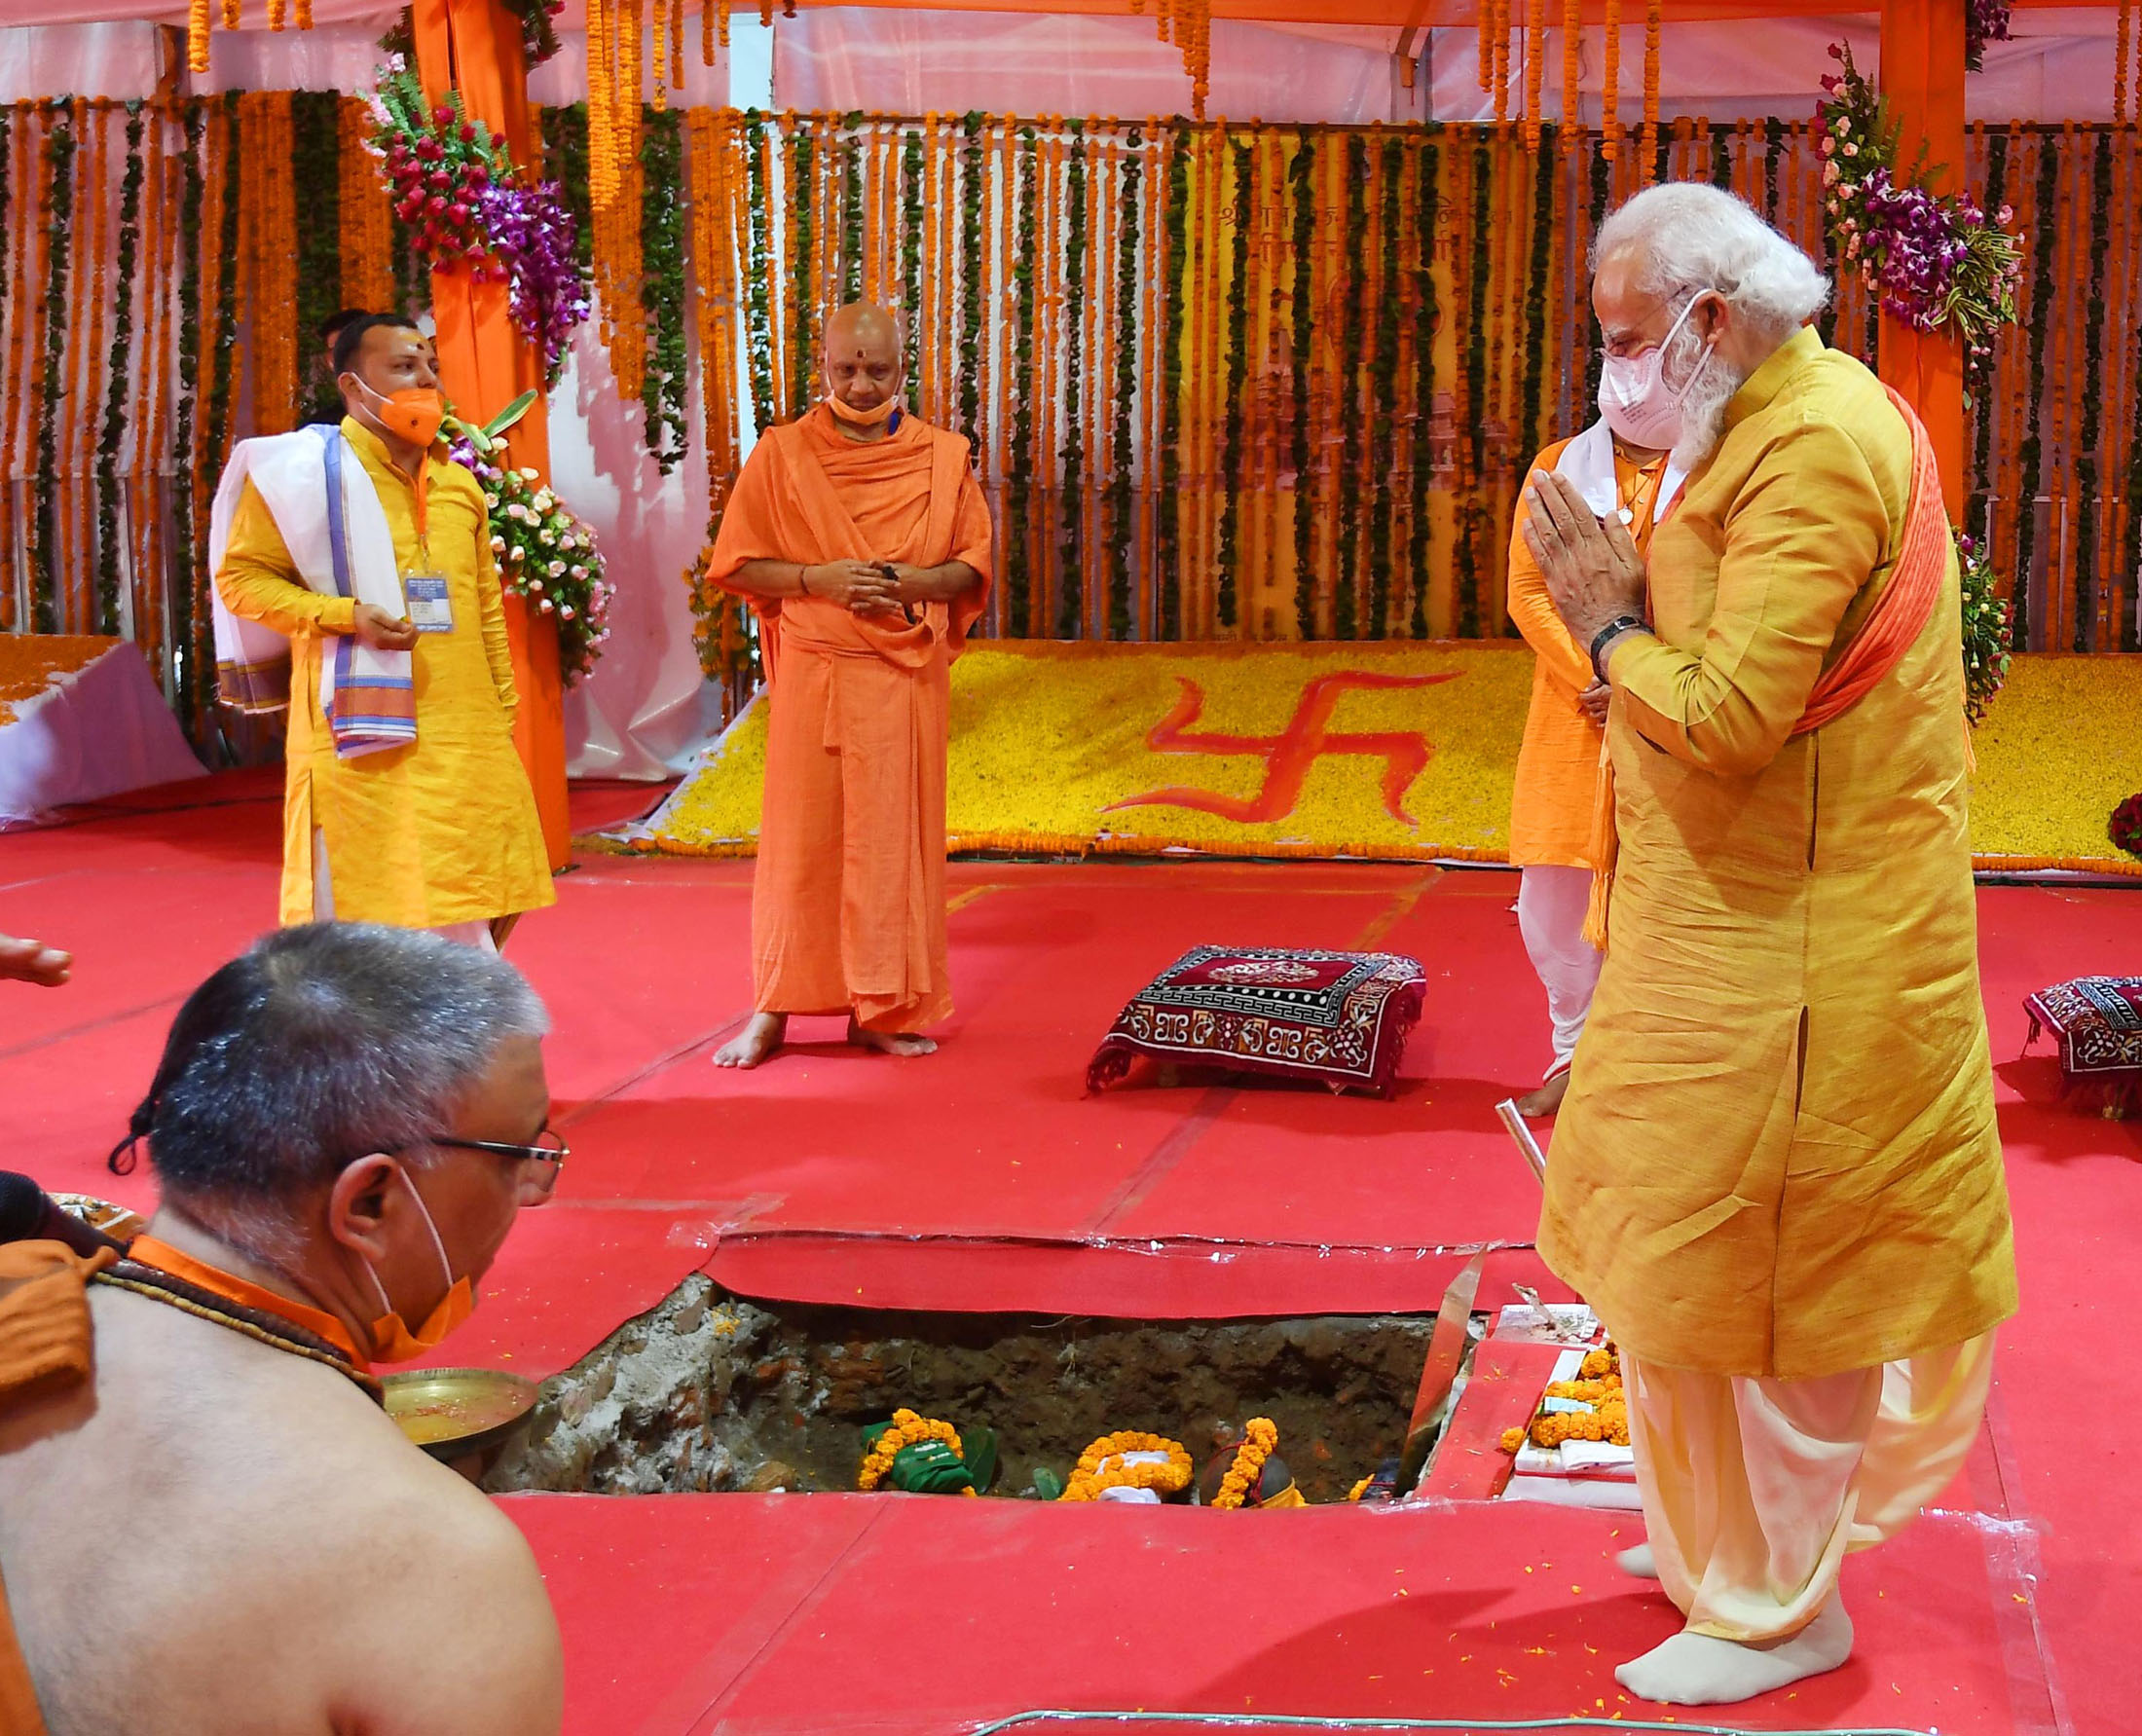 Ram temple will change the economy of the region